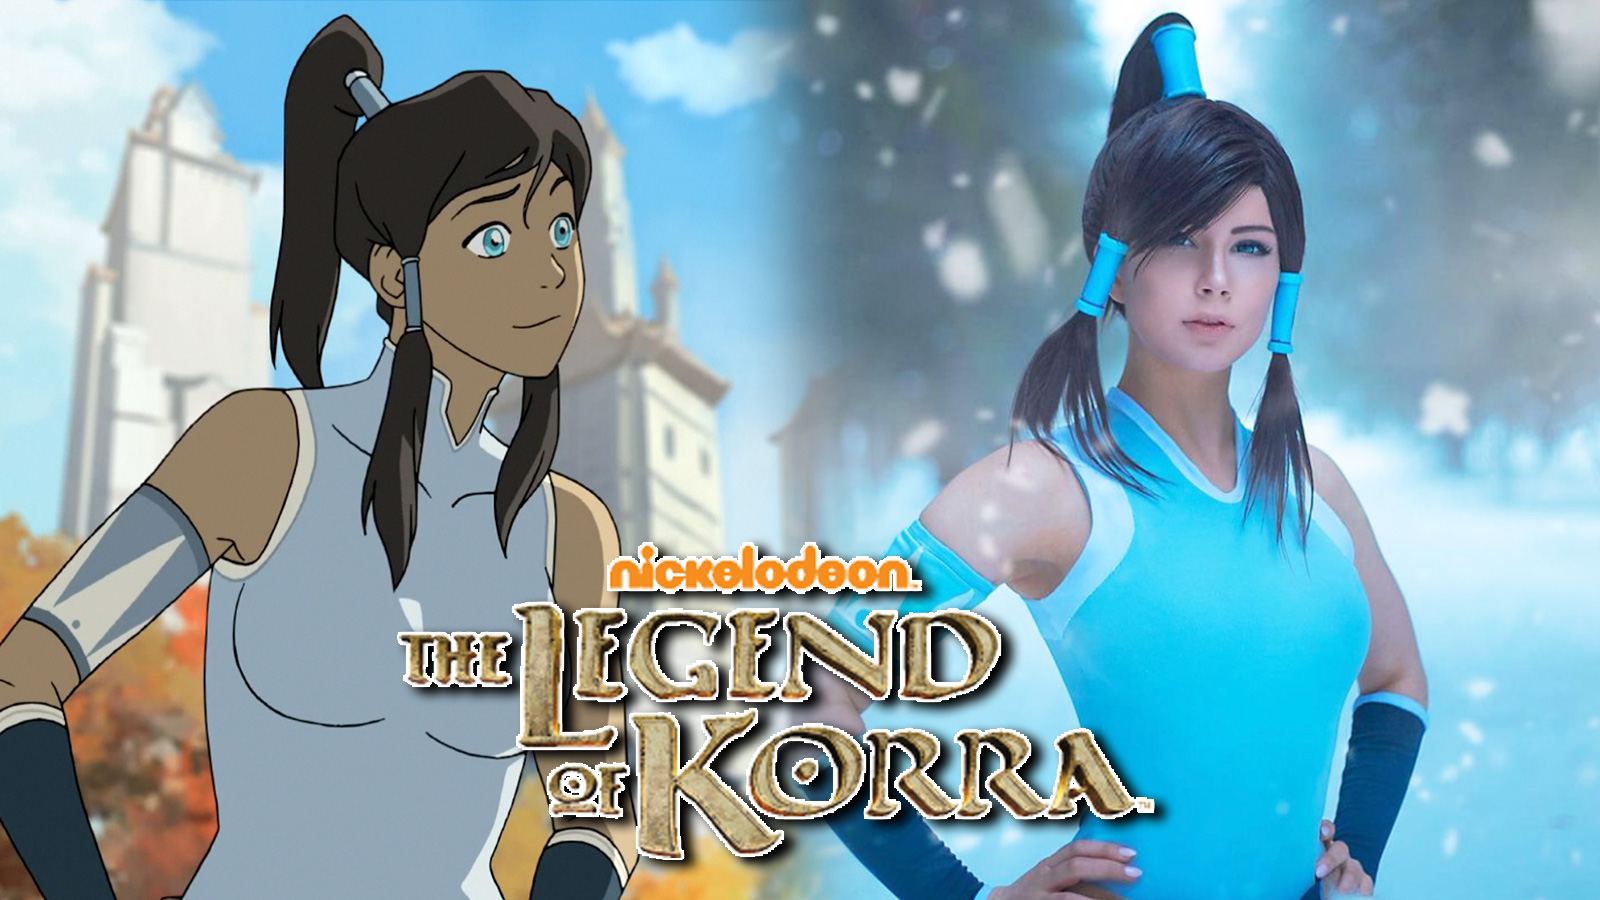 Screenshot of Avatar Korra next to cosplayer.